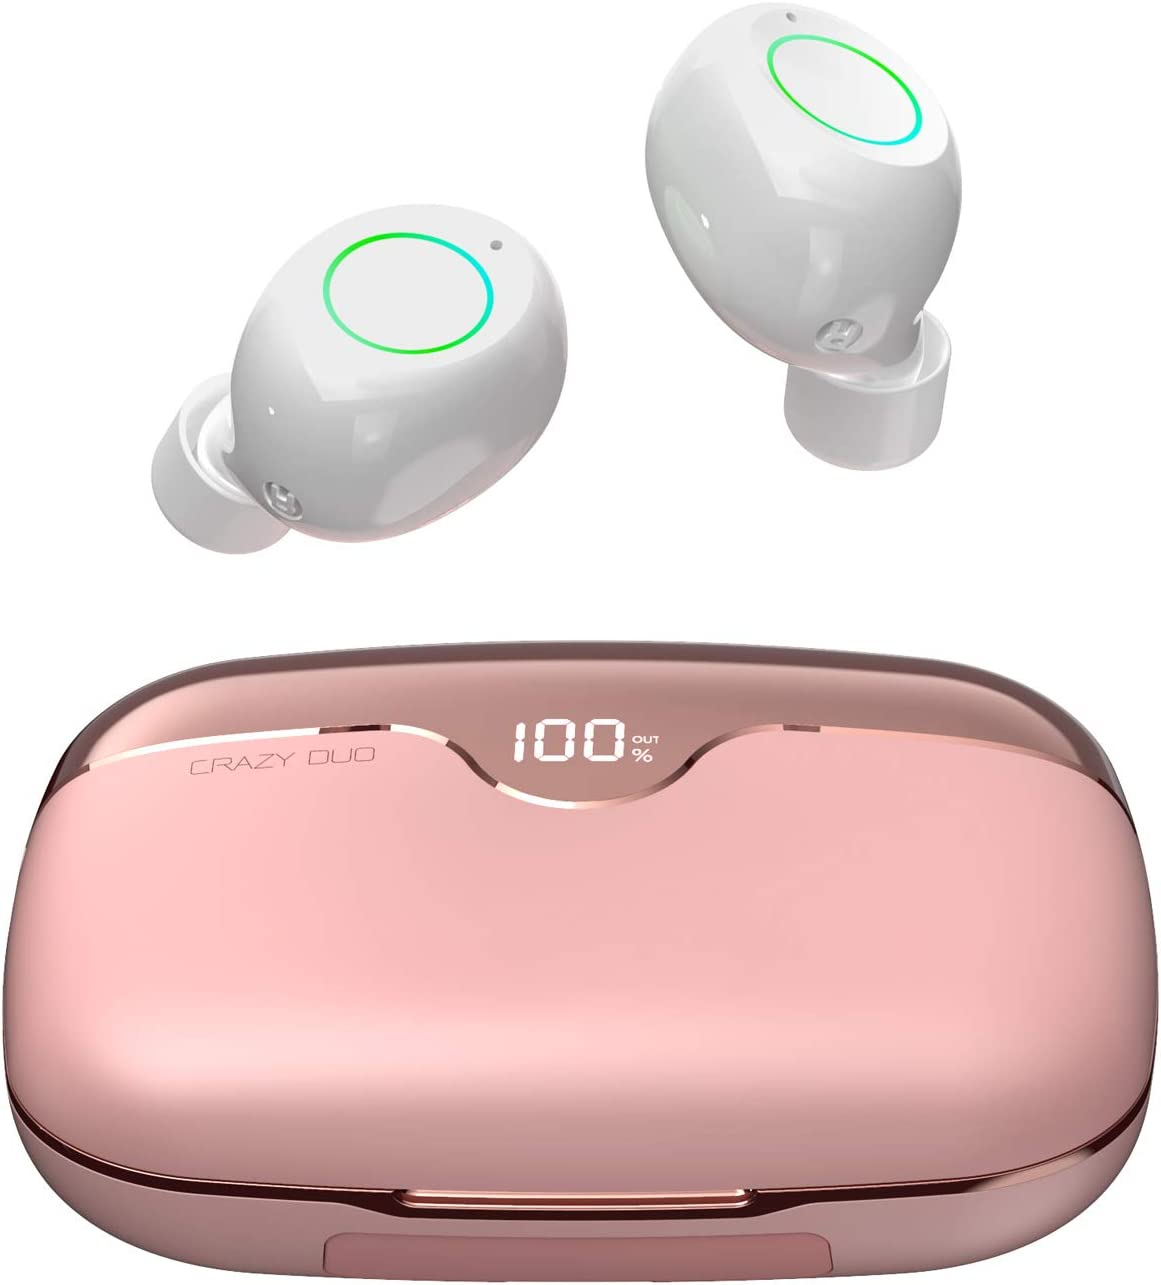 iWALK True Wireless Earbuds Bluetooth 5.0 with 2500mAh Charging Case, 80H Playtime Instant Pairing IPX5 Waterproof, Touch Control Wireless Earphones with Built-in Mic for iOS Android, Pink